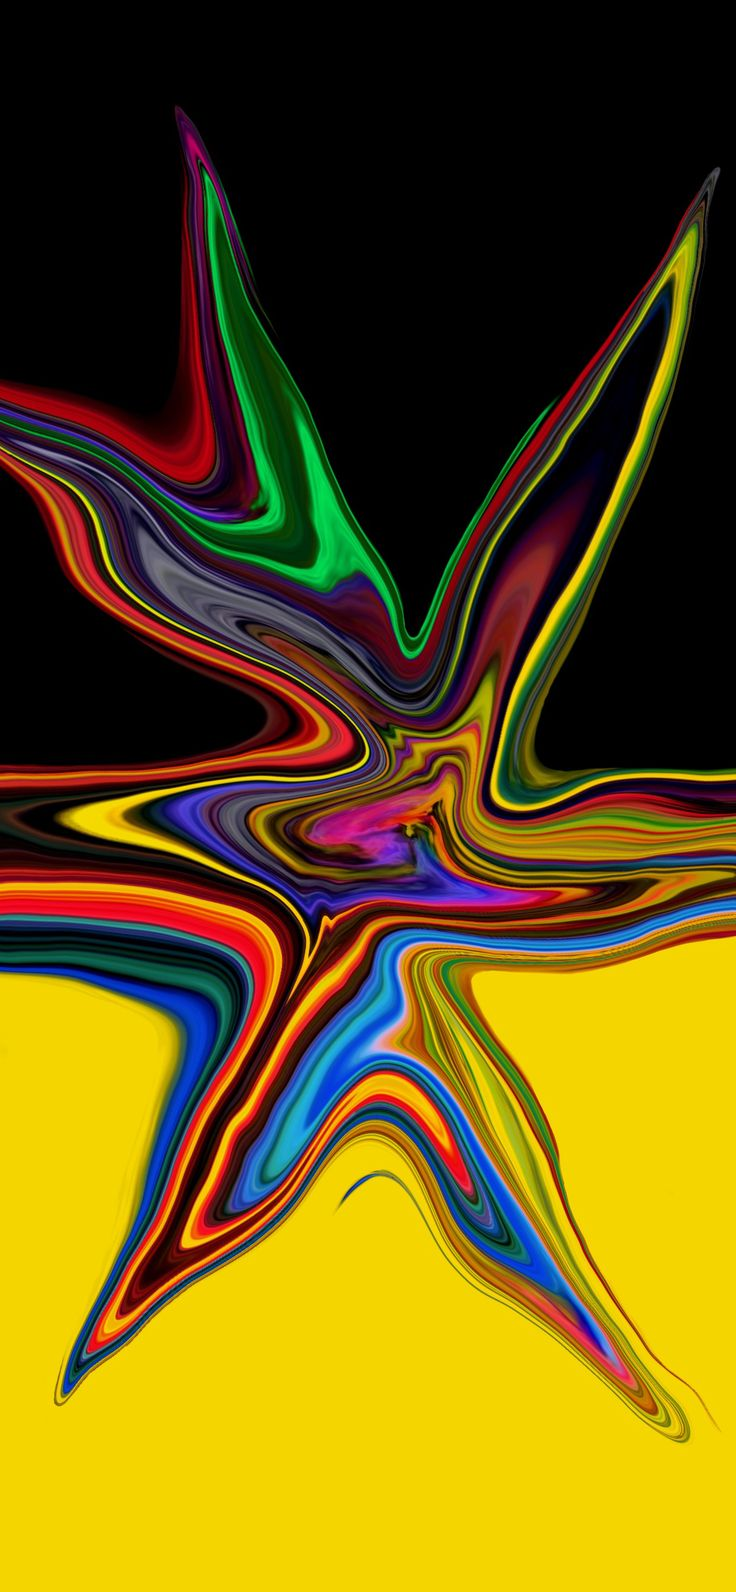 Abstract Wallpaper Designed By ©Hotspot4U | Abstract HD Wallpapers 8